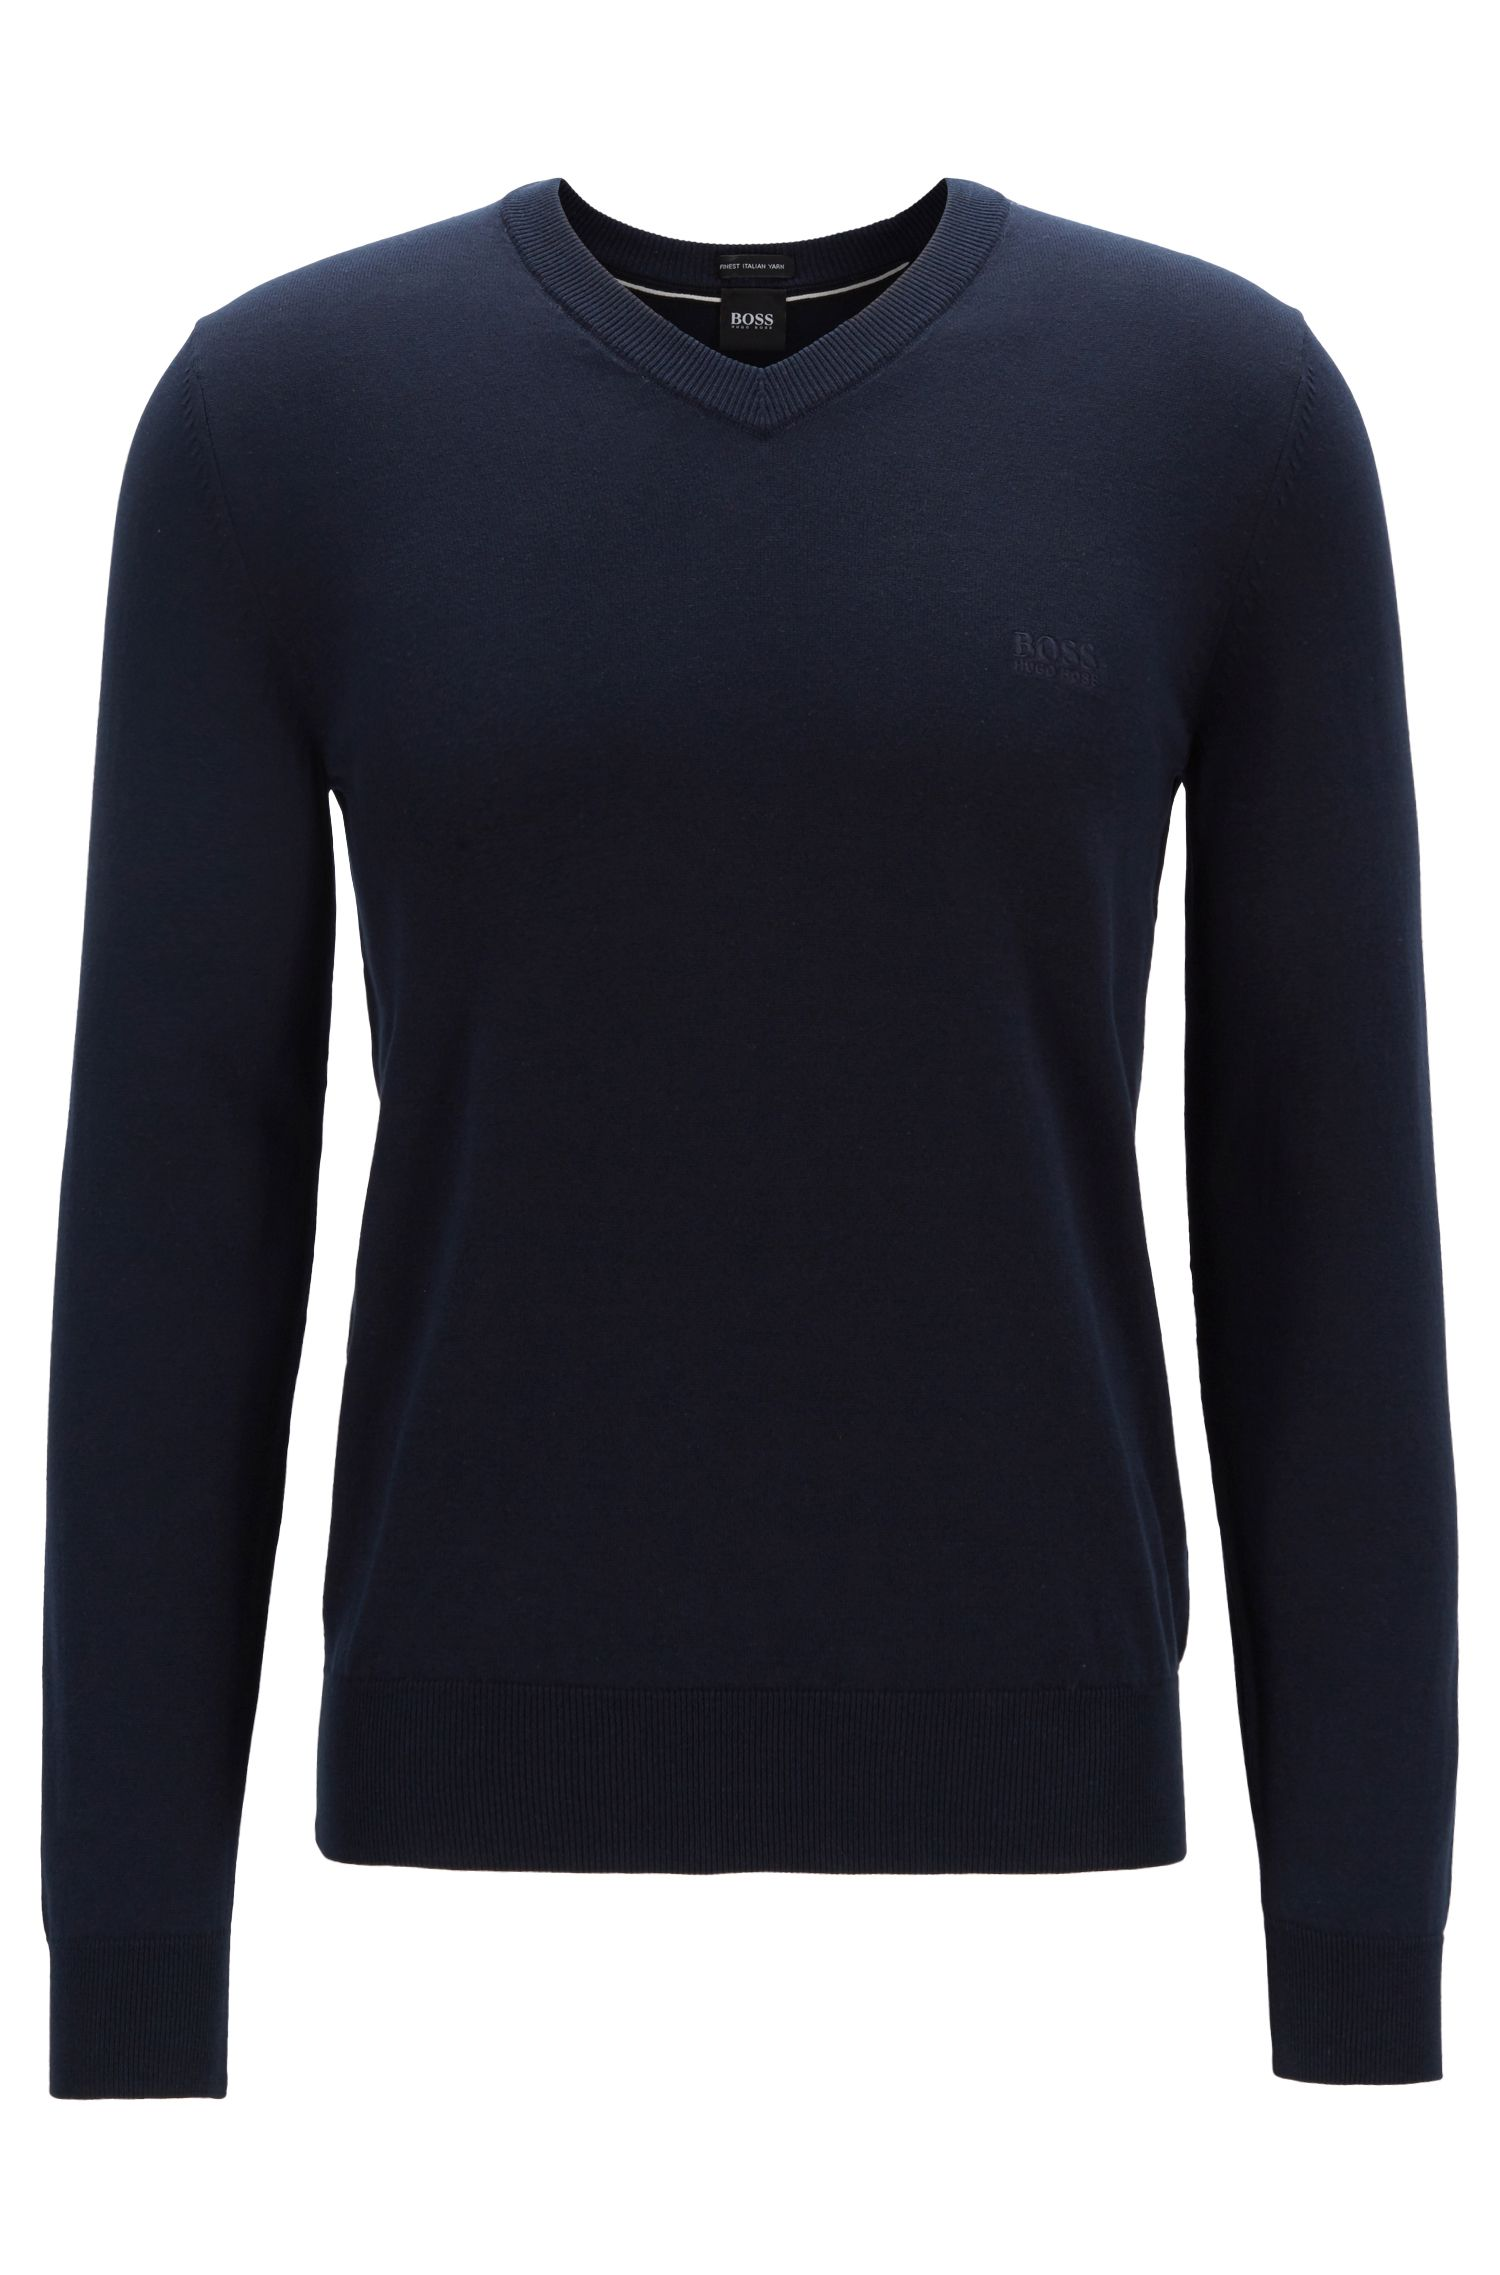 Cotton V-neck sweater with tonal embroidery, Blue